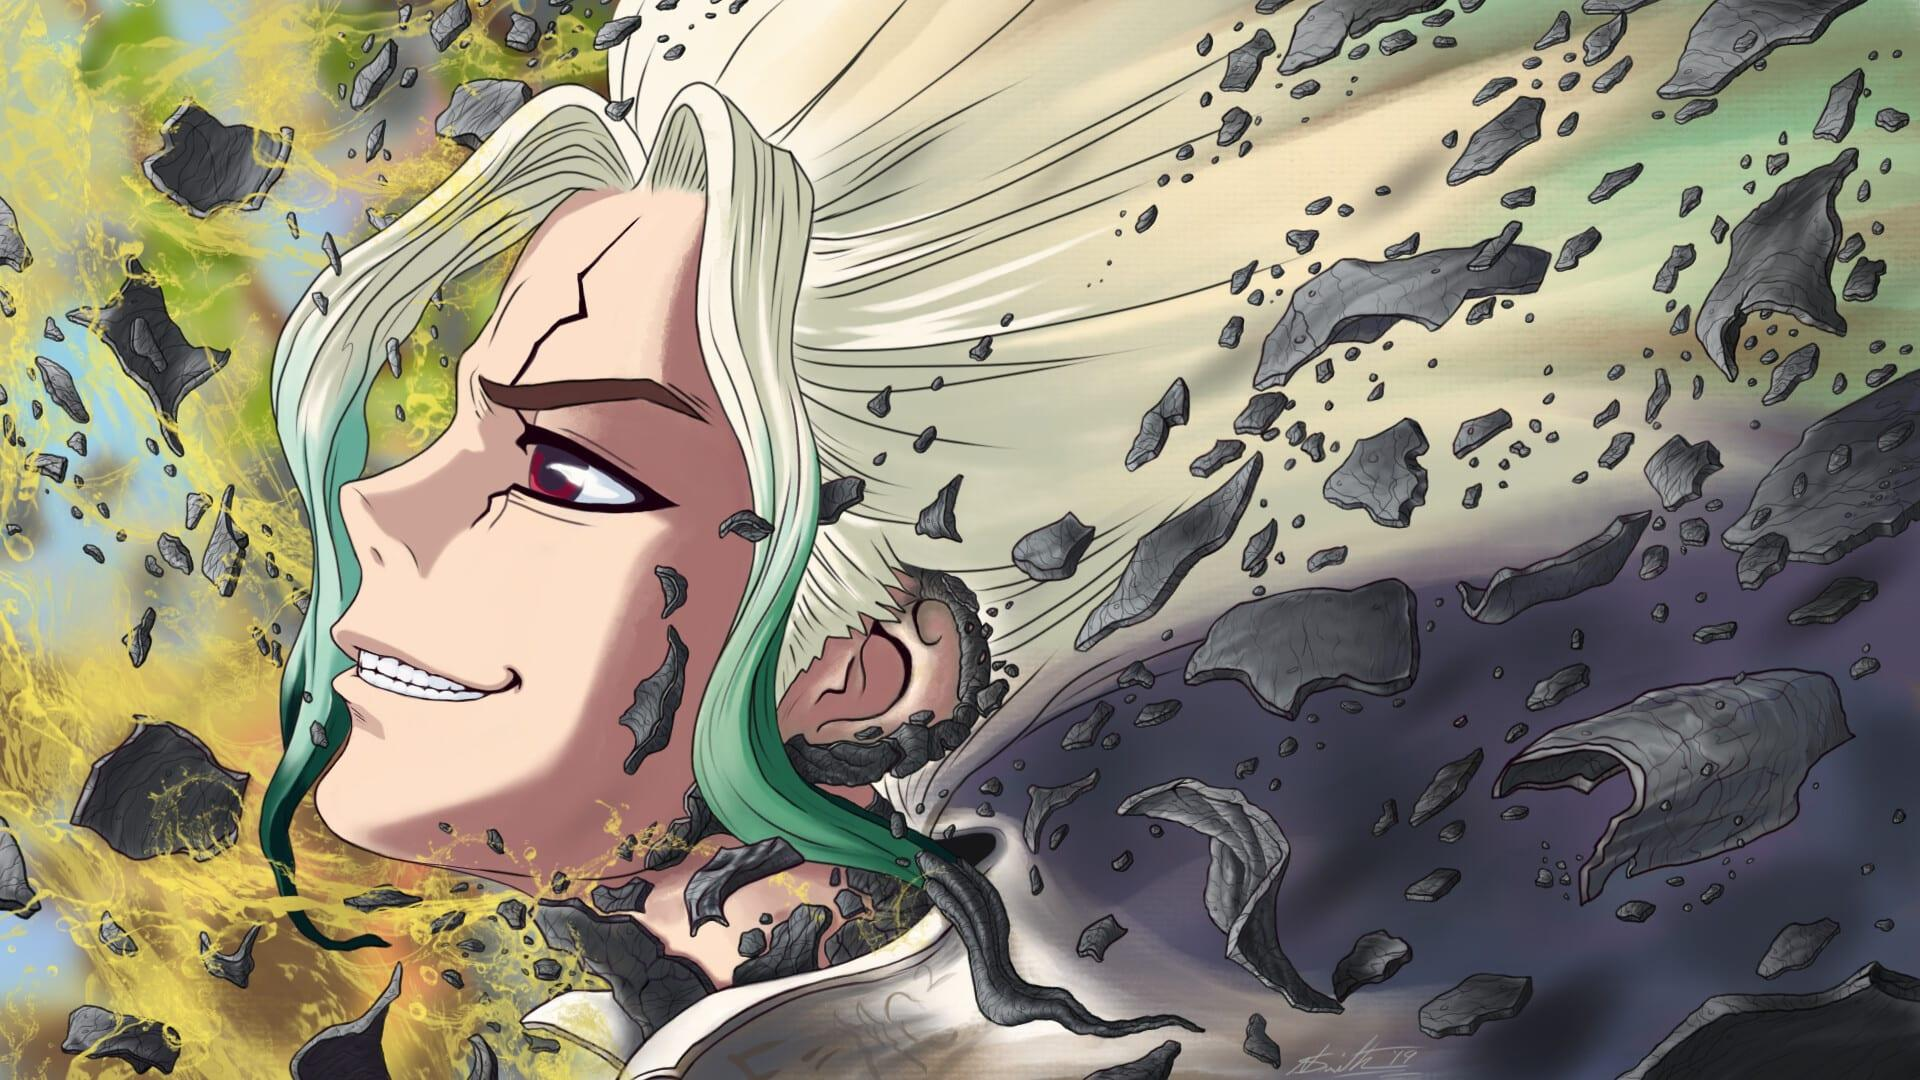 Dr. Stone Episode 15 'The Culmination of Two Million Years